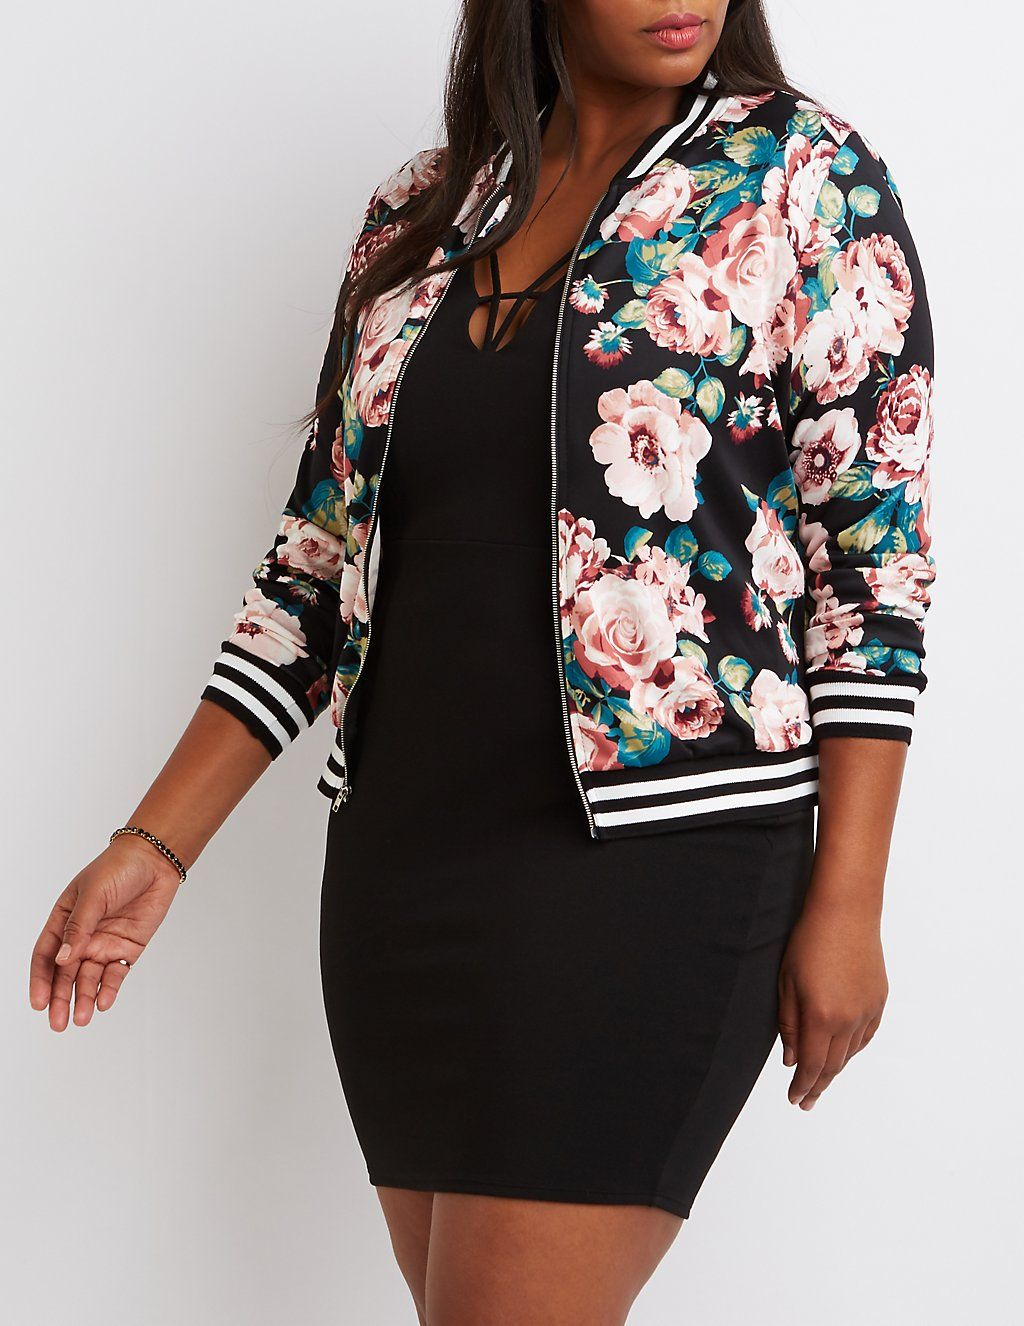 073006ce085 Plus Size Floral Striped Bomber Jacket in 2019